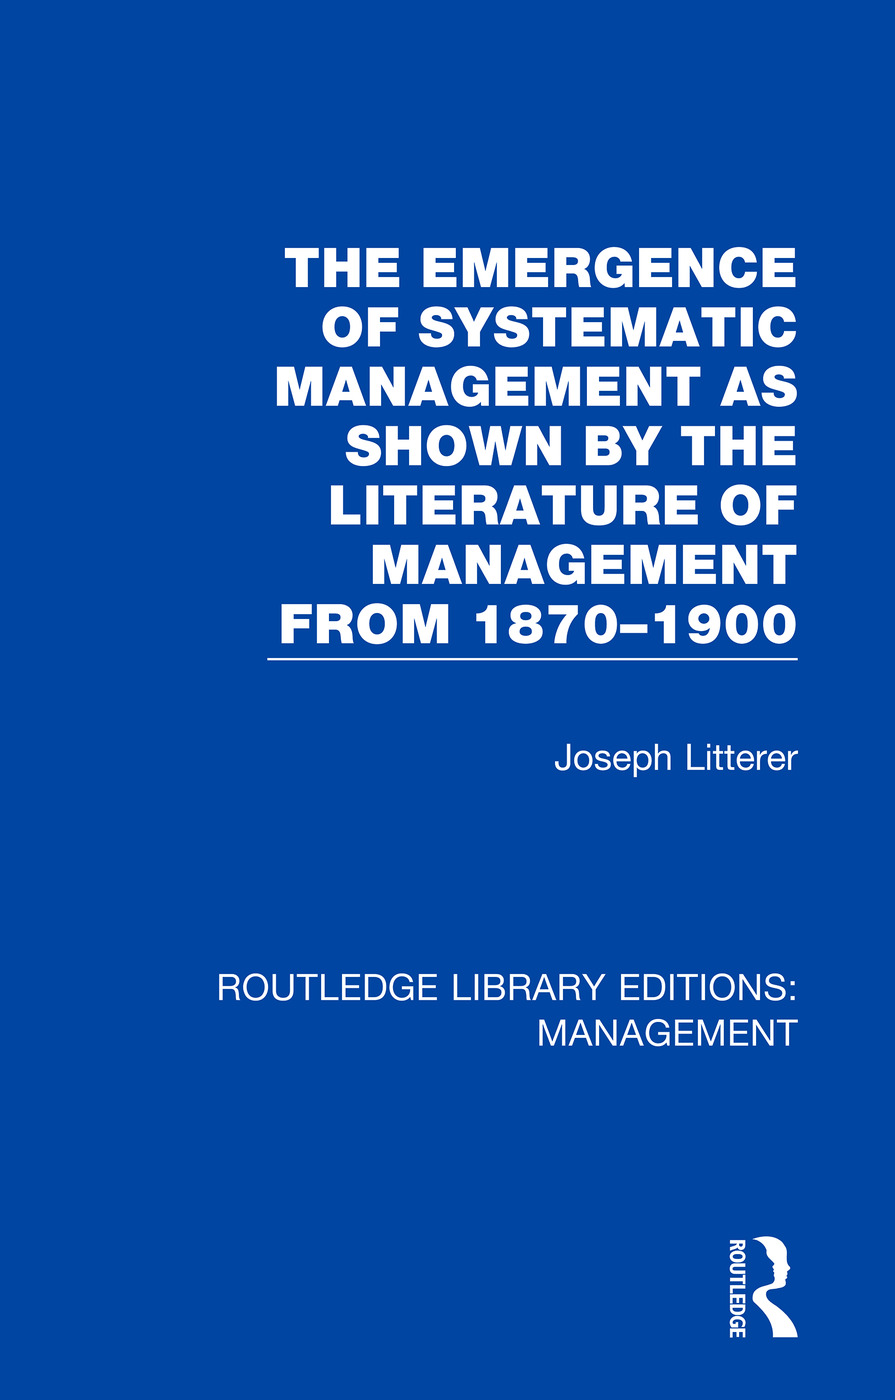 The Emergence of Systematic Management as Shown by the Literature of Management from 1870-1900